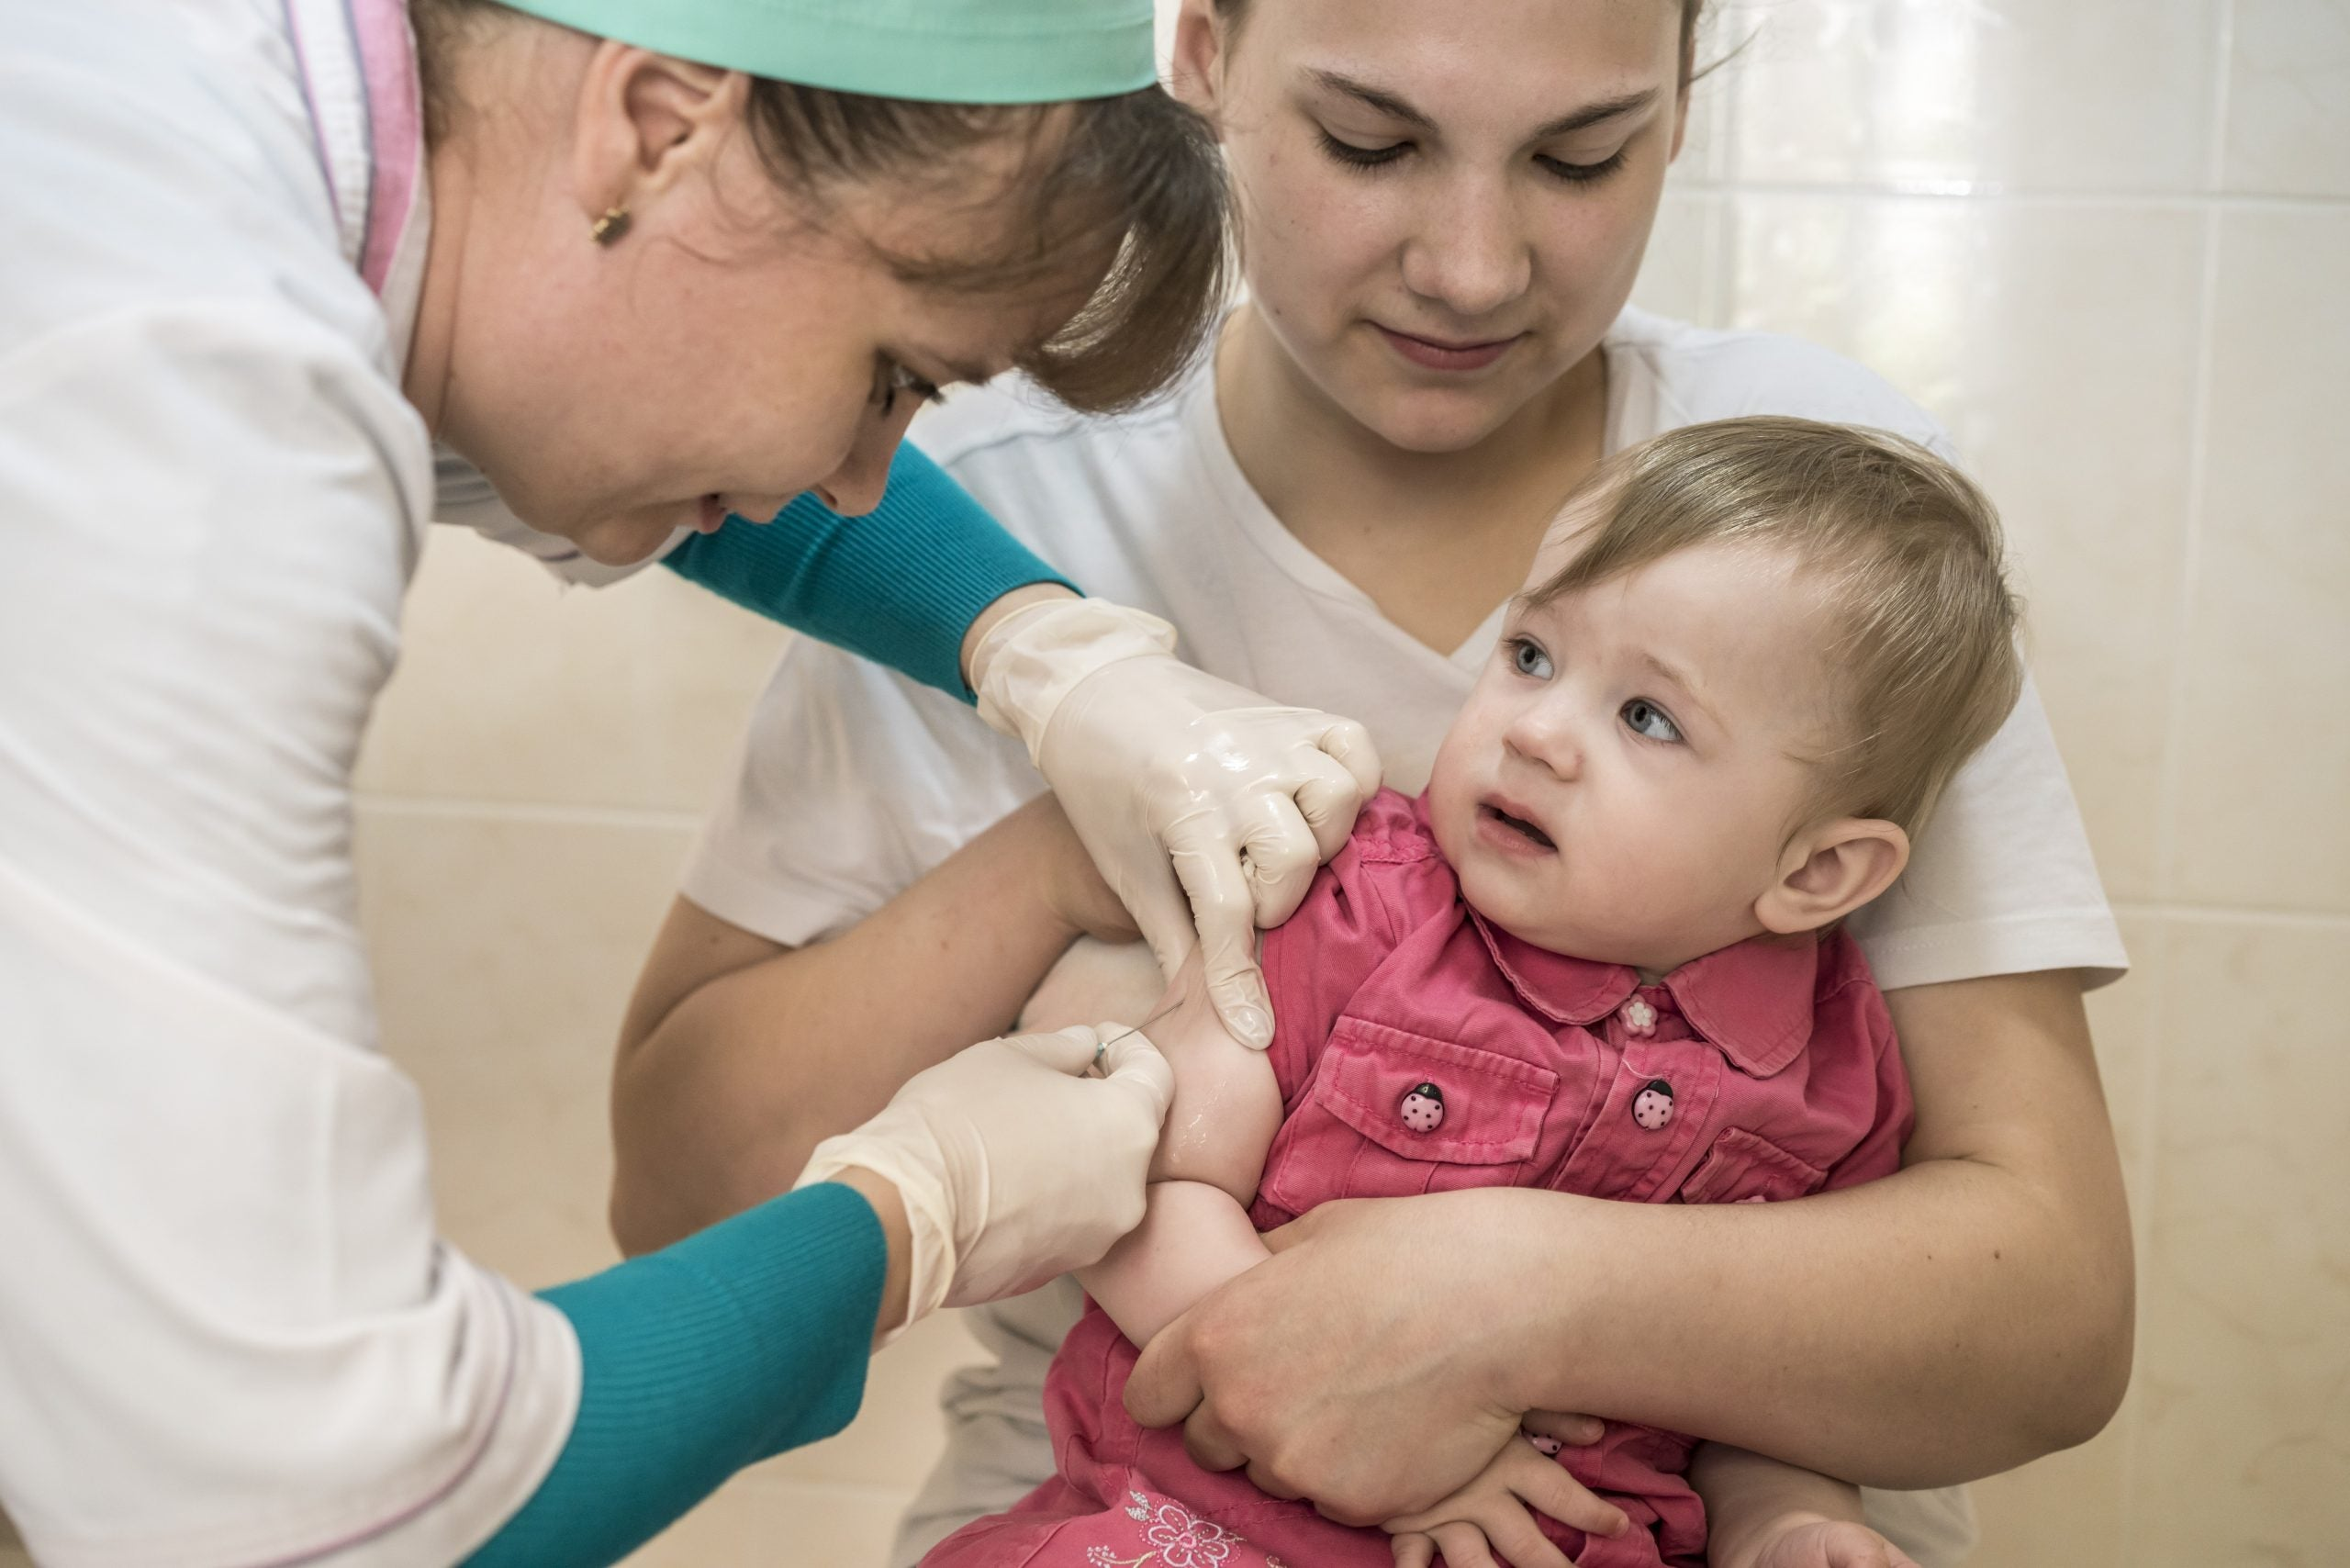 To jab or not to jab? The way to combat the anti-vaxxers is through evidence not coercion